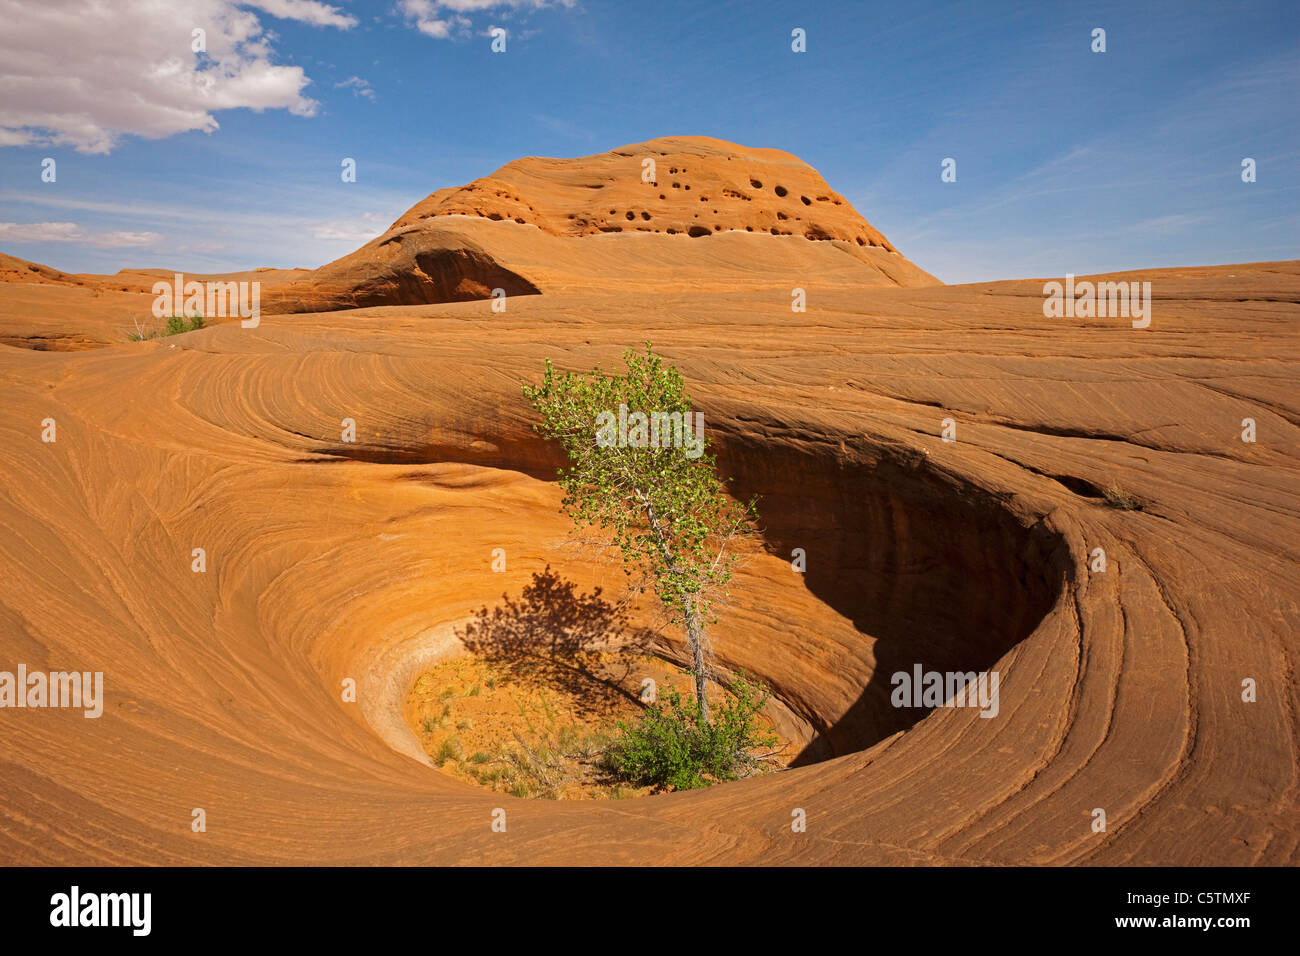 USA, Utah, Grand Staircase Escalante National Monument, Dance Hall Rock, Rocky landscape - Stock Image